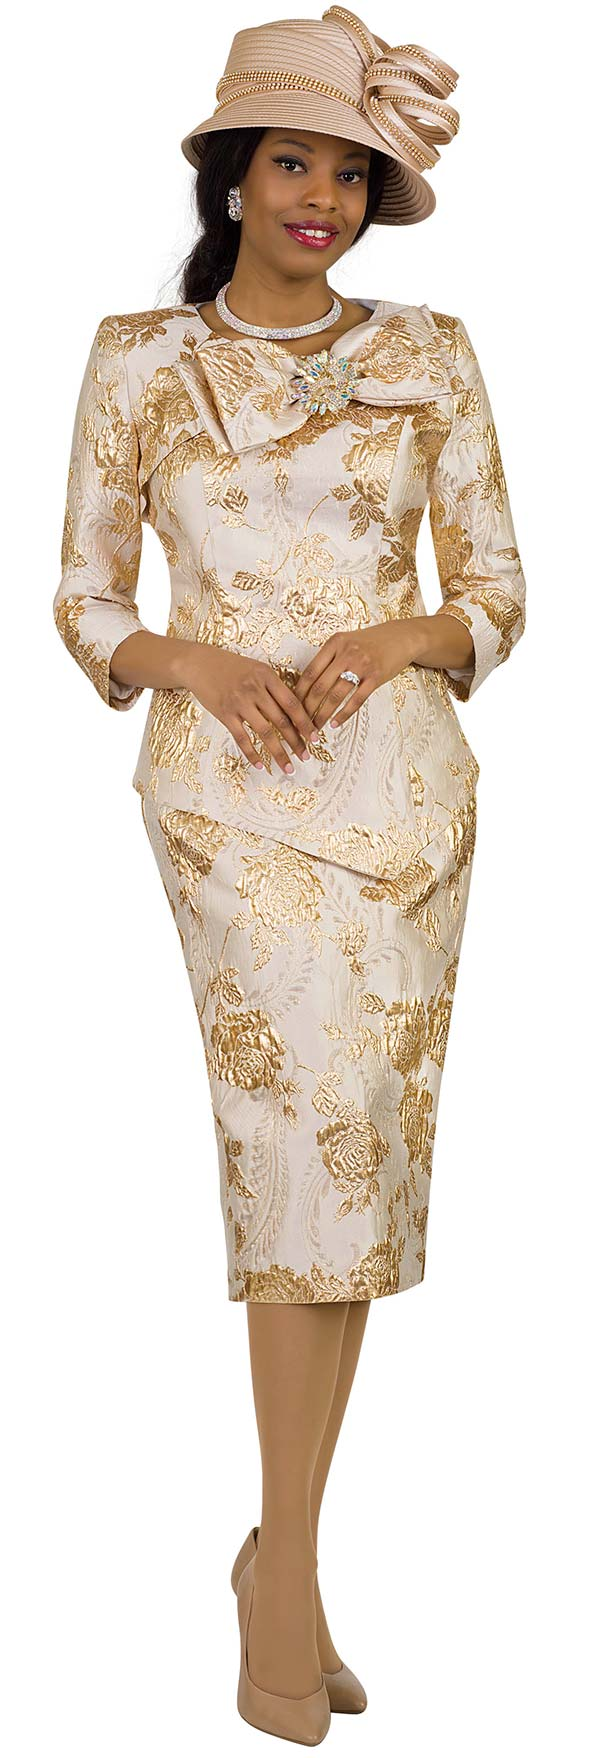 Lily and Taylor 4421 -  Novelty Brocade Look Church Suit With Bow Adornment Feature